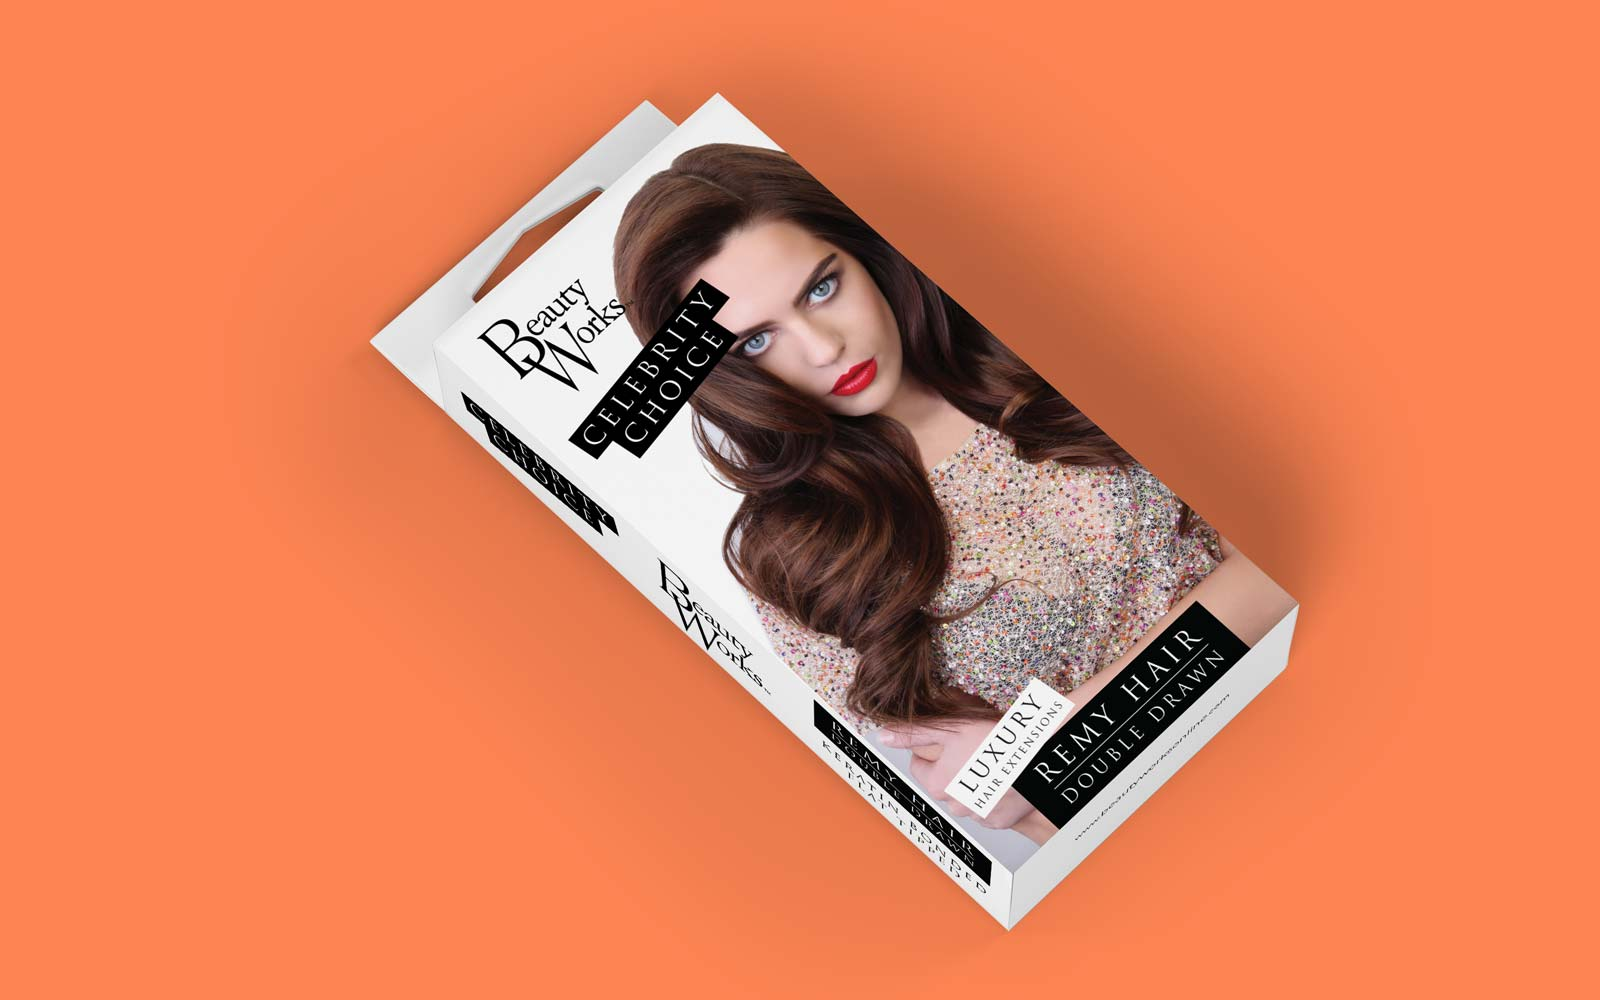 celebrity choice hair extensions packaging